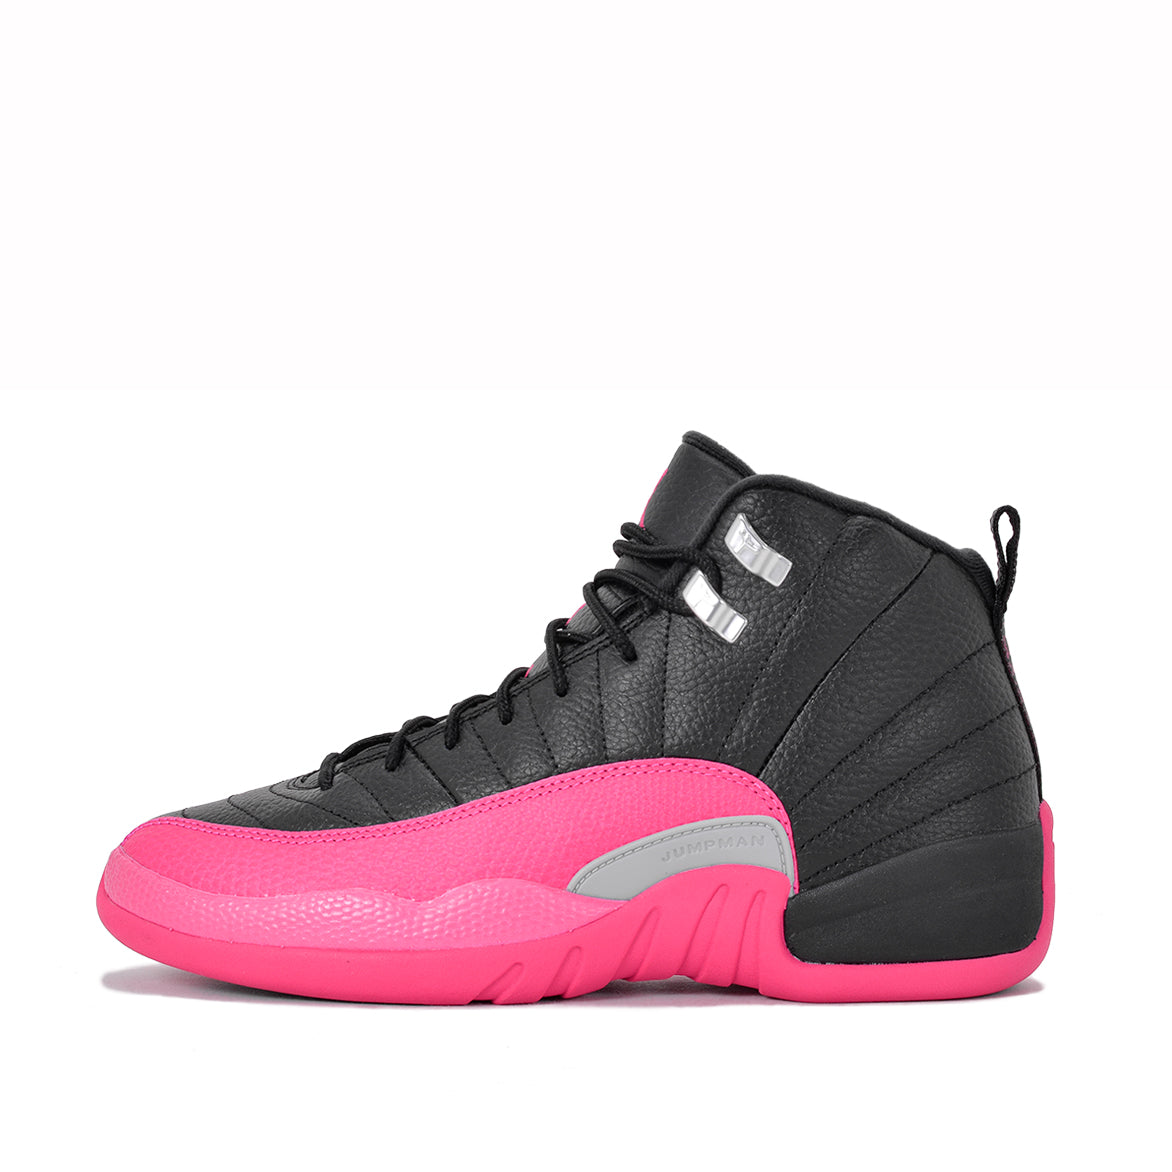 0516a1daec14 AIR JORDAN 12 RETRO (GG)